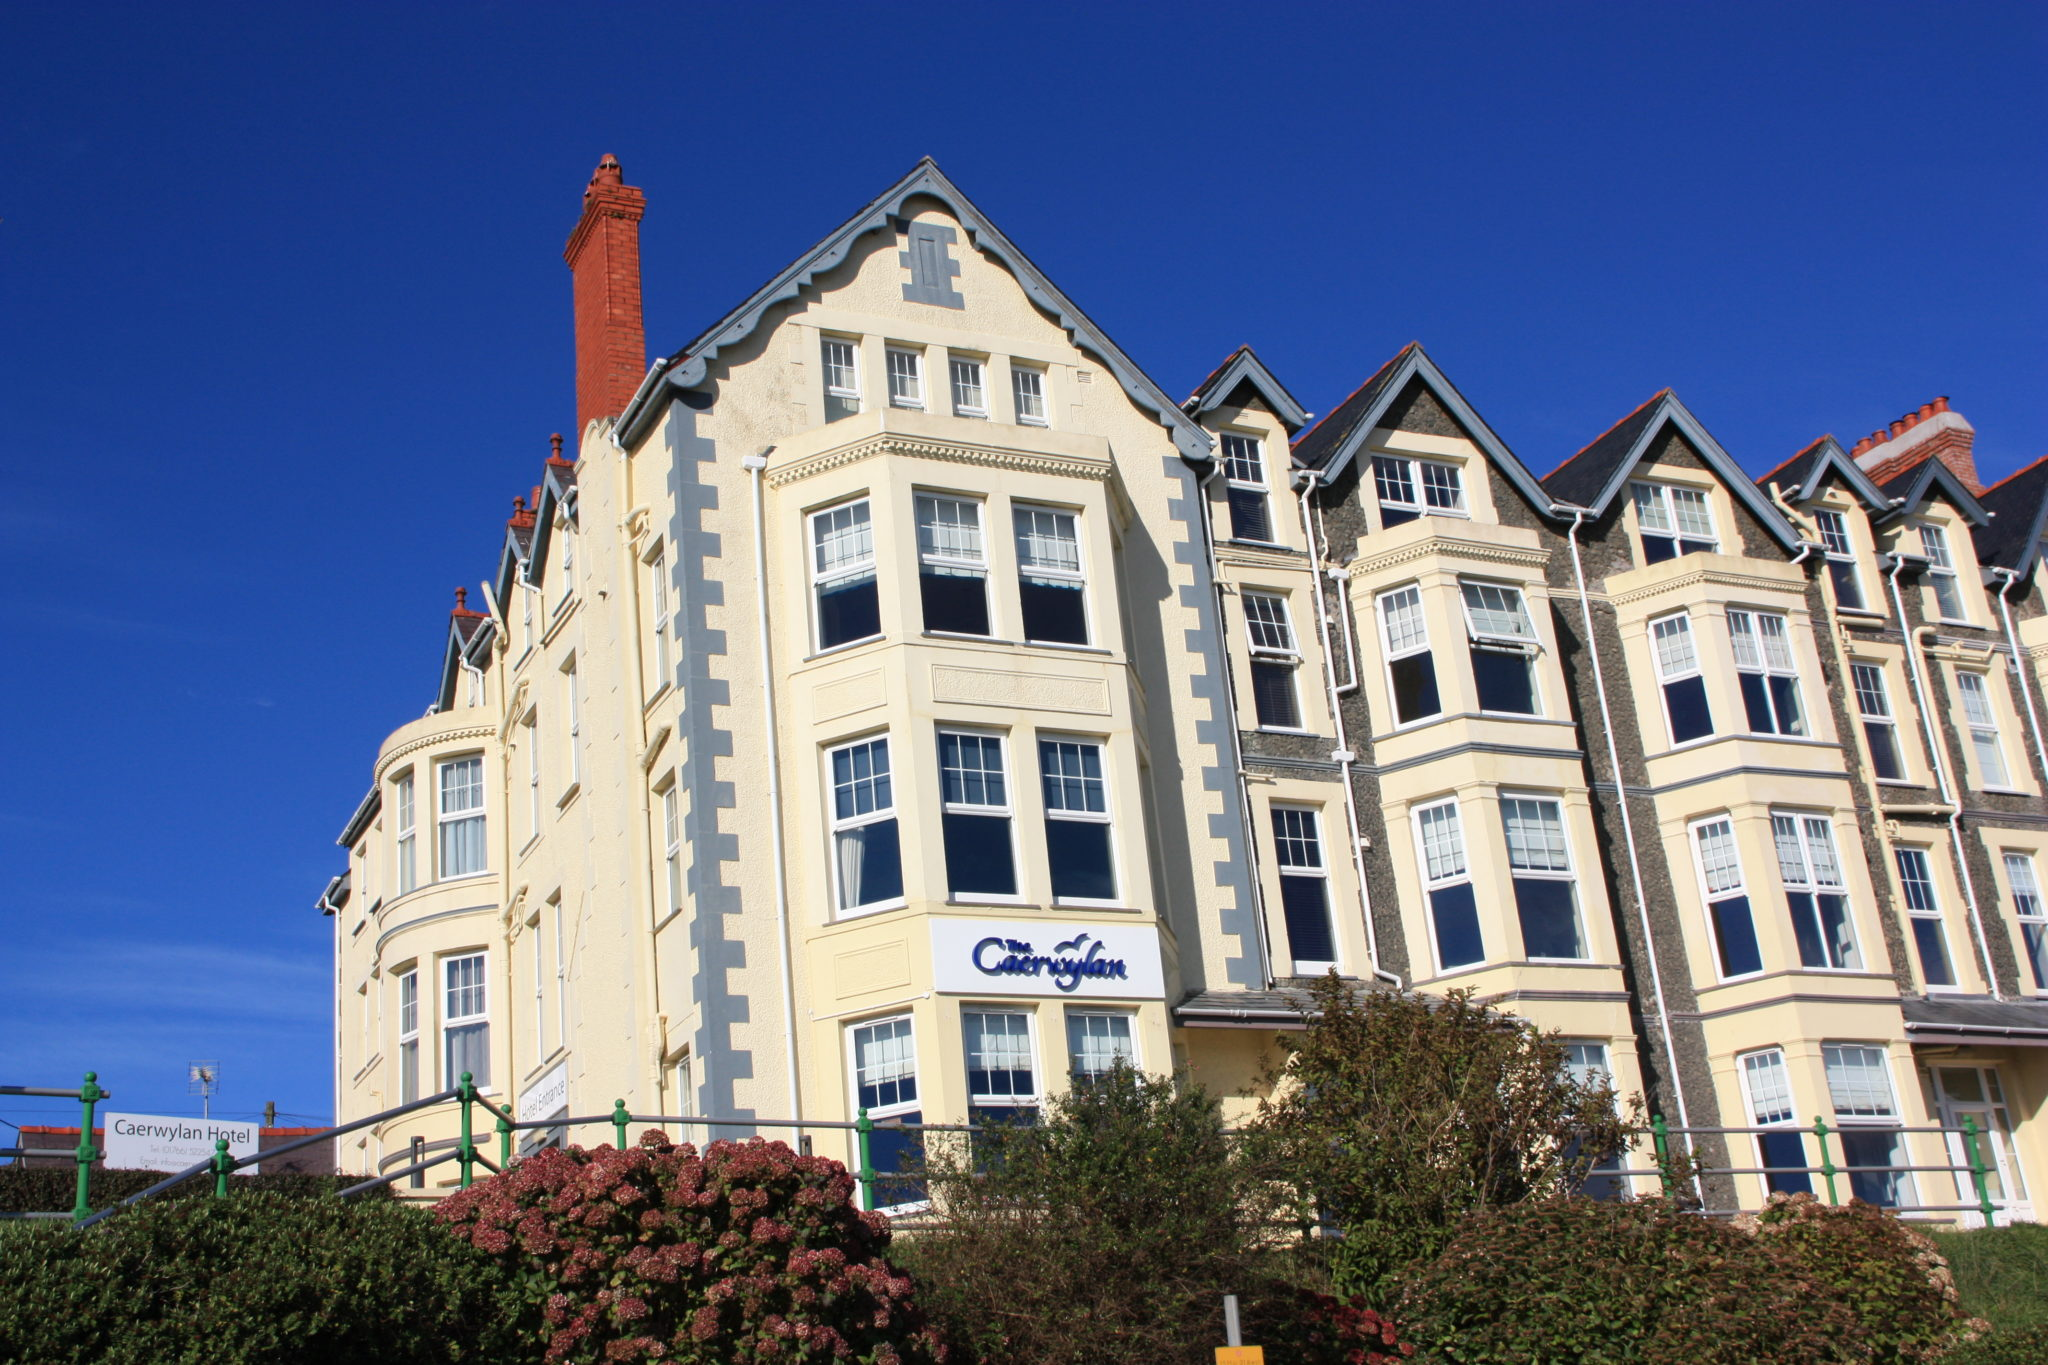 The Caerwylan Exterior View, Criccieth North Wales